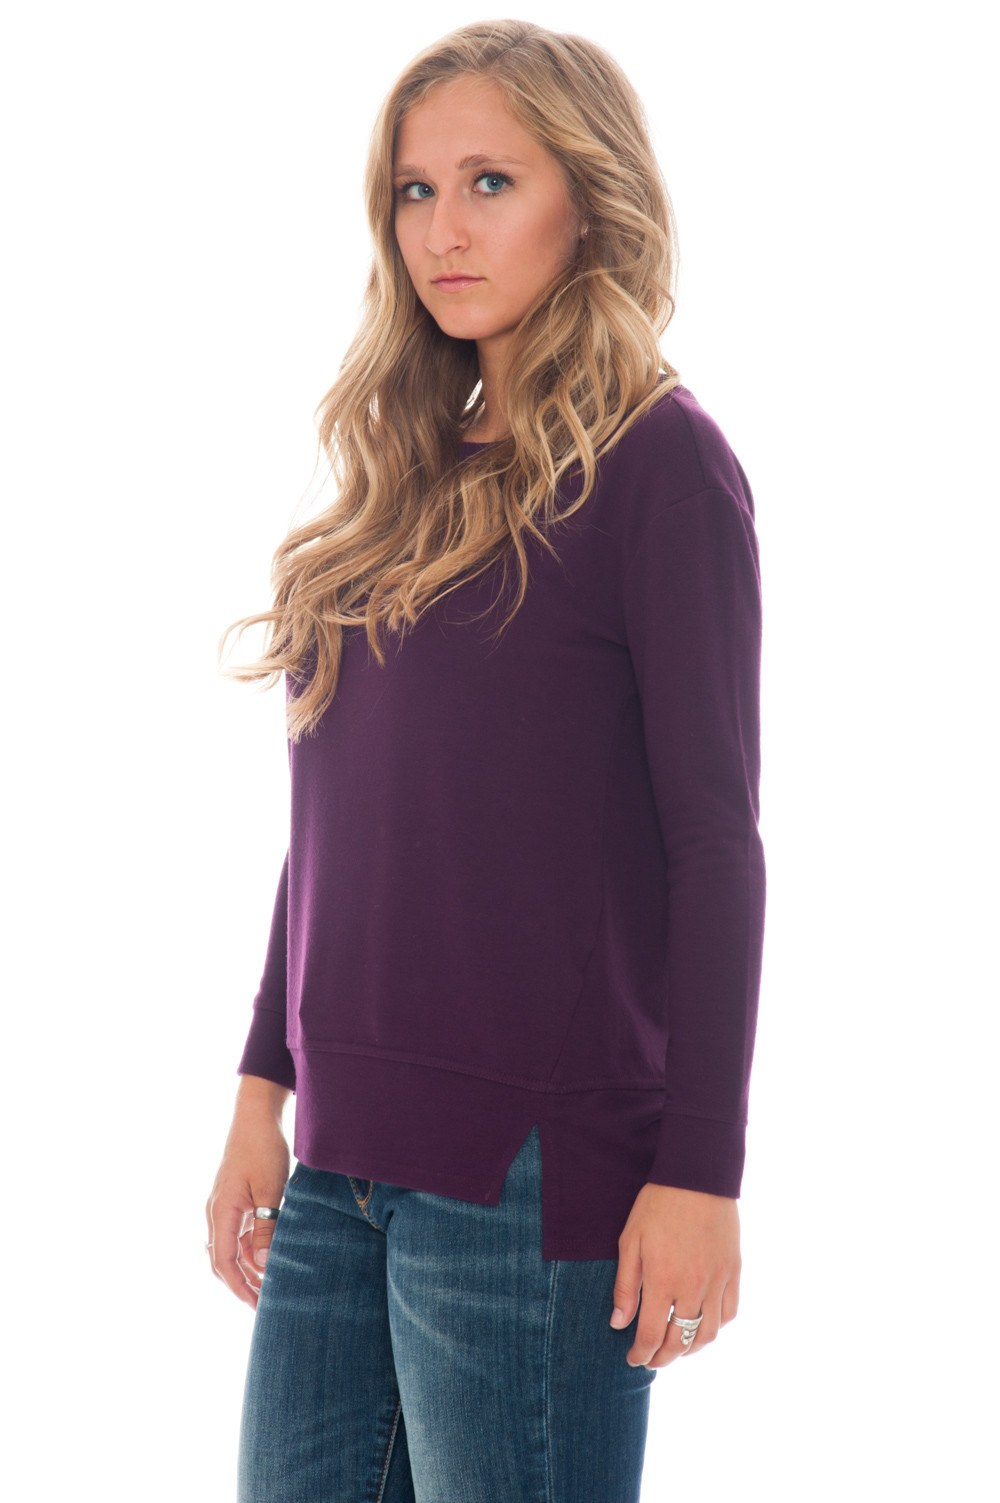 Top - Begley Purple Sleeve by BB Dakota - 2